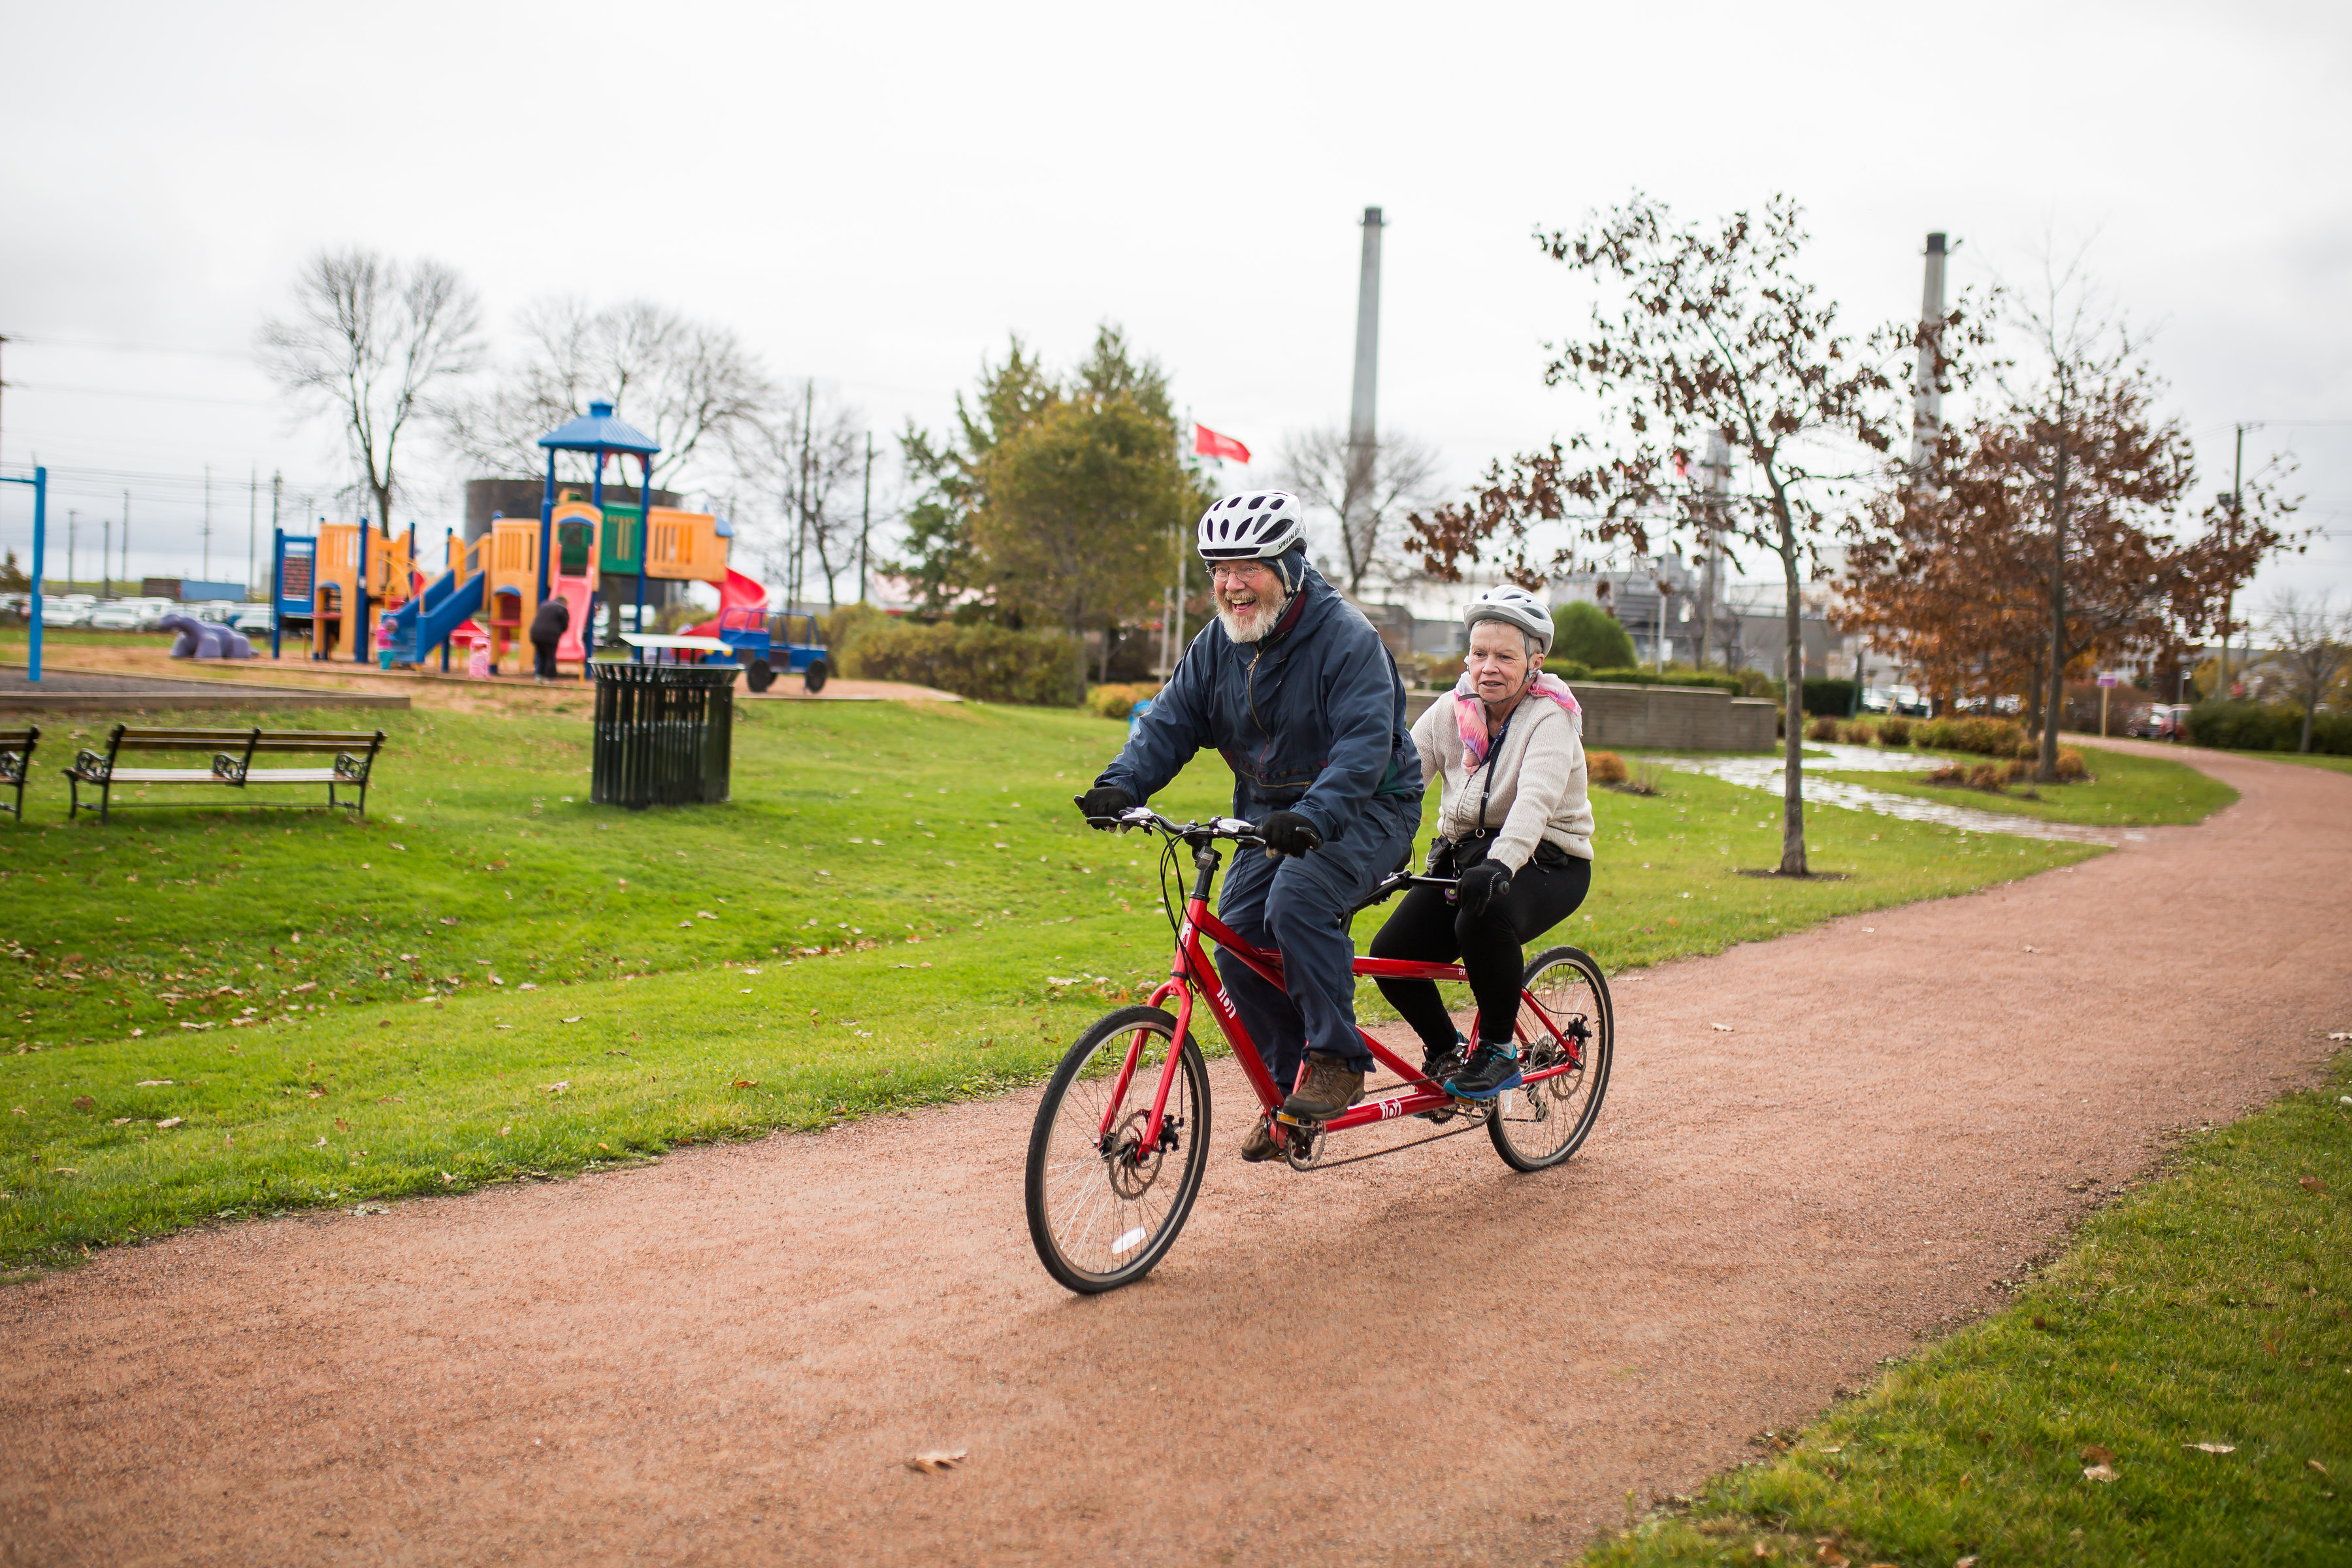 man and woman riding tandem bicycle through park, laughing